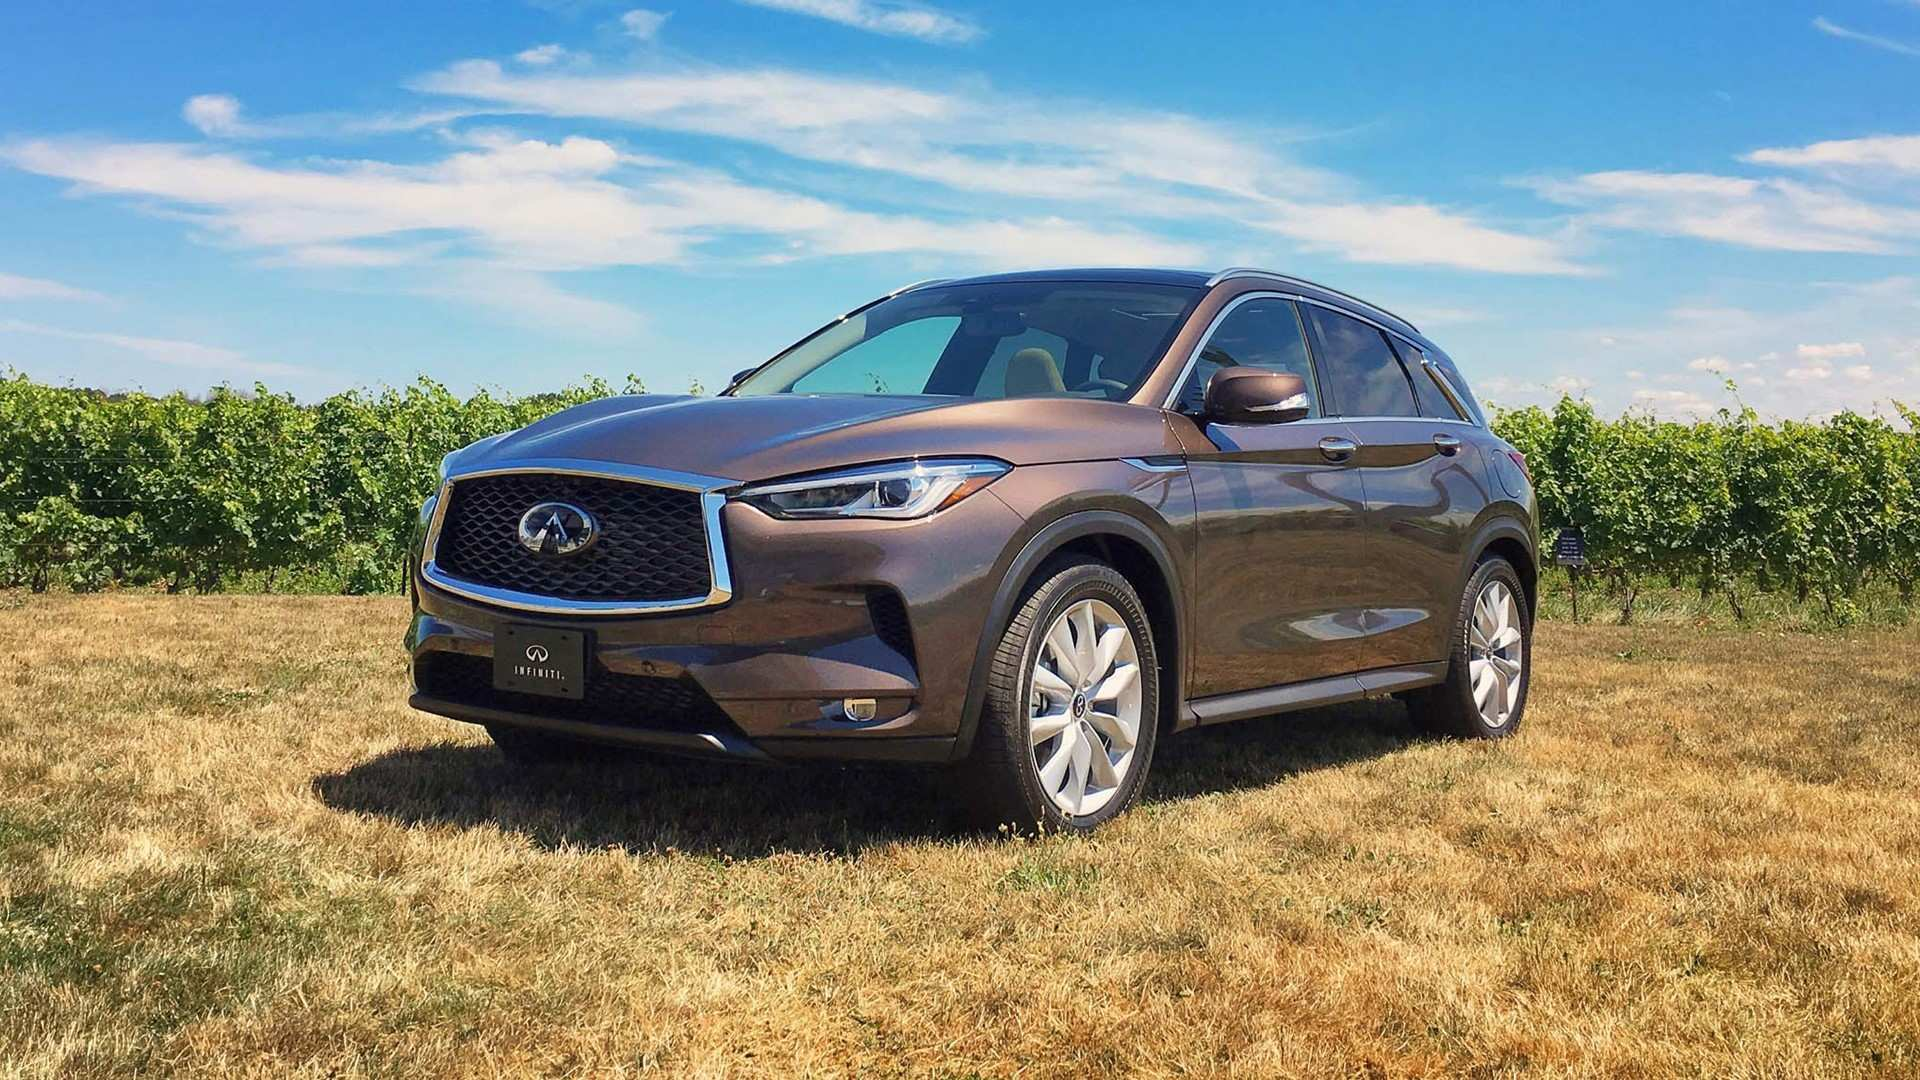 69 All New Best 2019 Infiniti Qx50 Autograph Price Price for Best 2019 Infiniti Qx50 Autograph Price